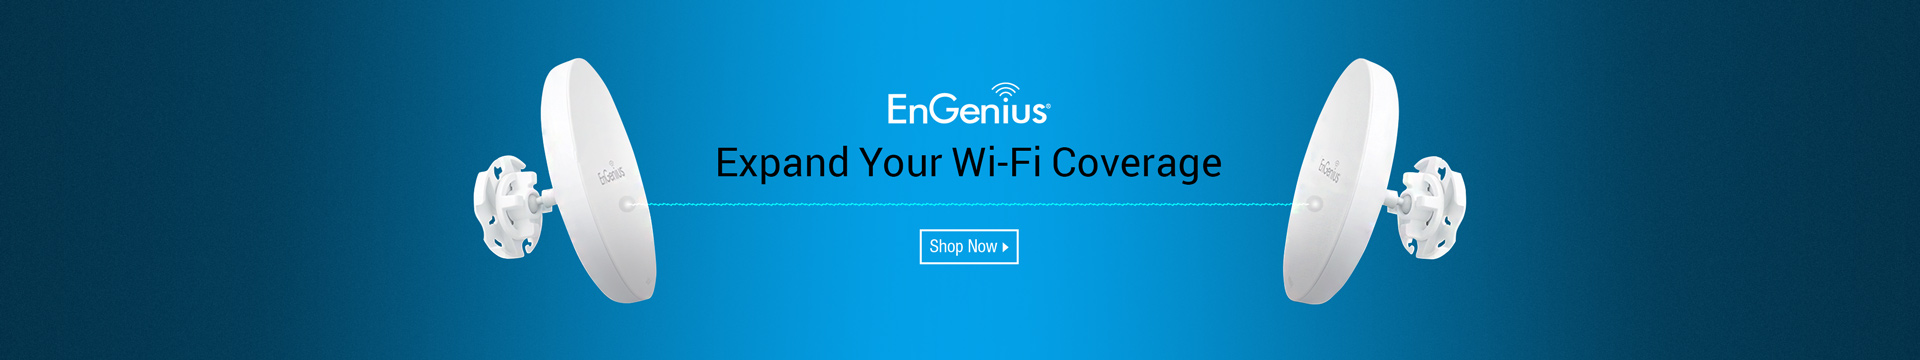 Expand Your Wi-Fi Coverage